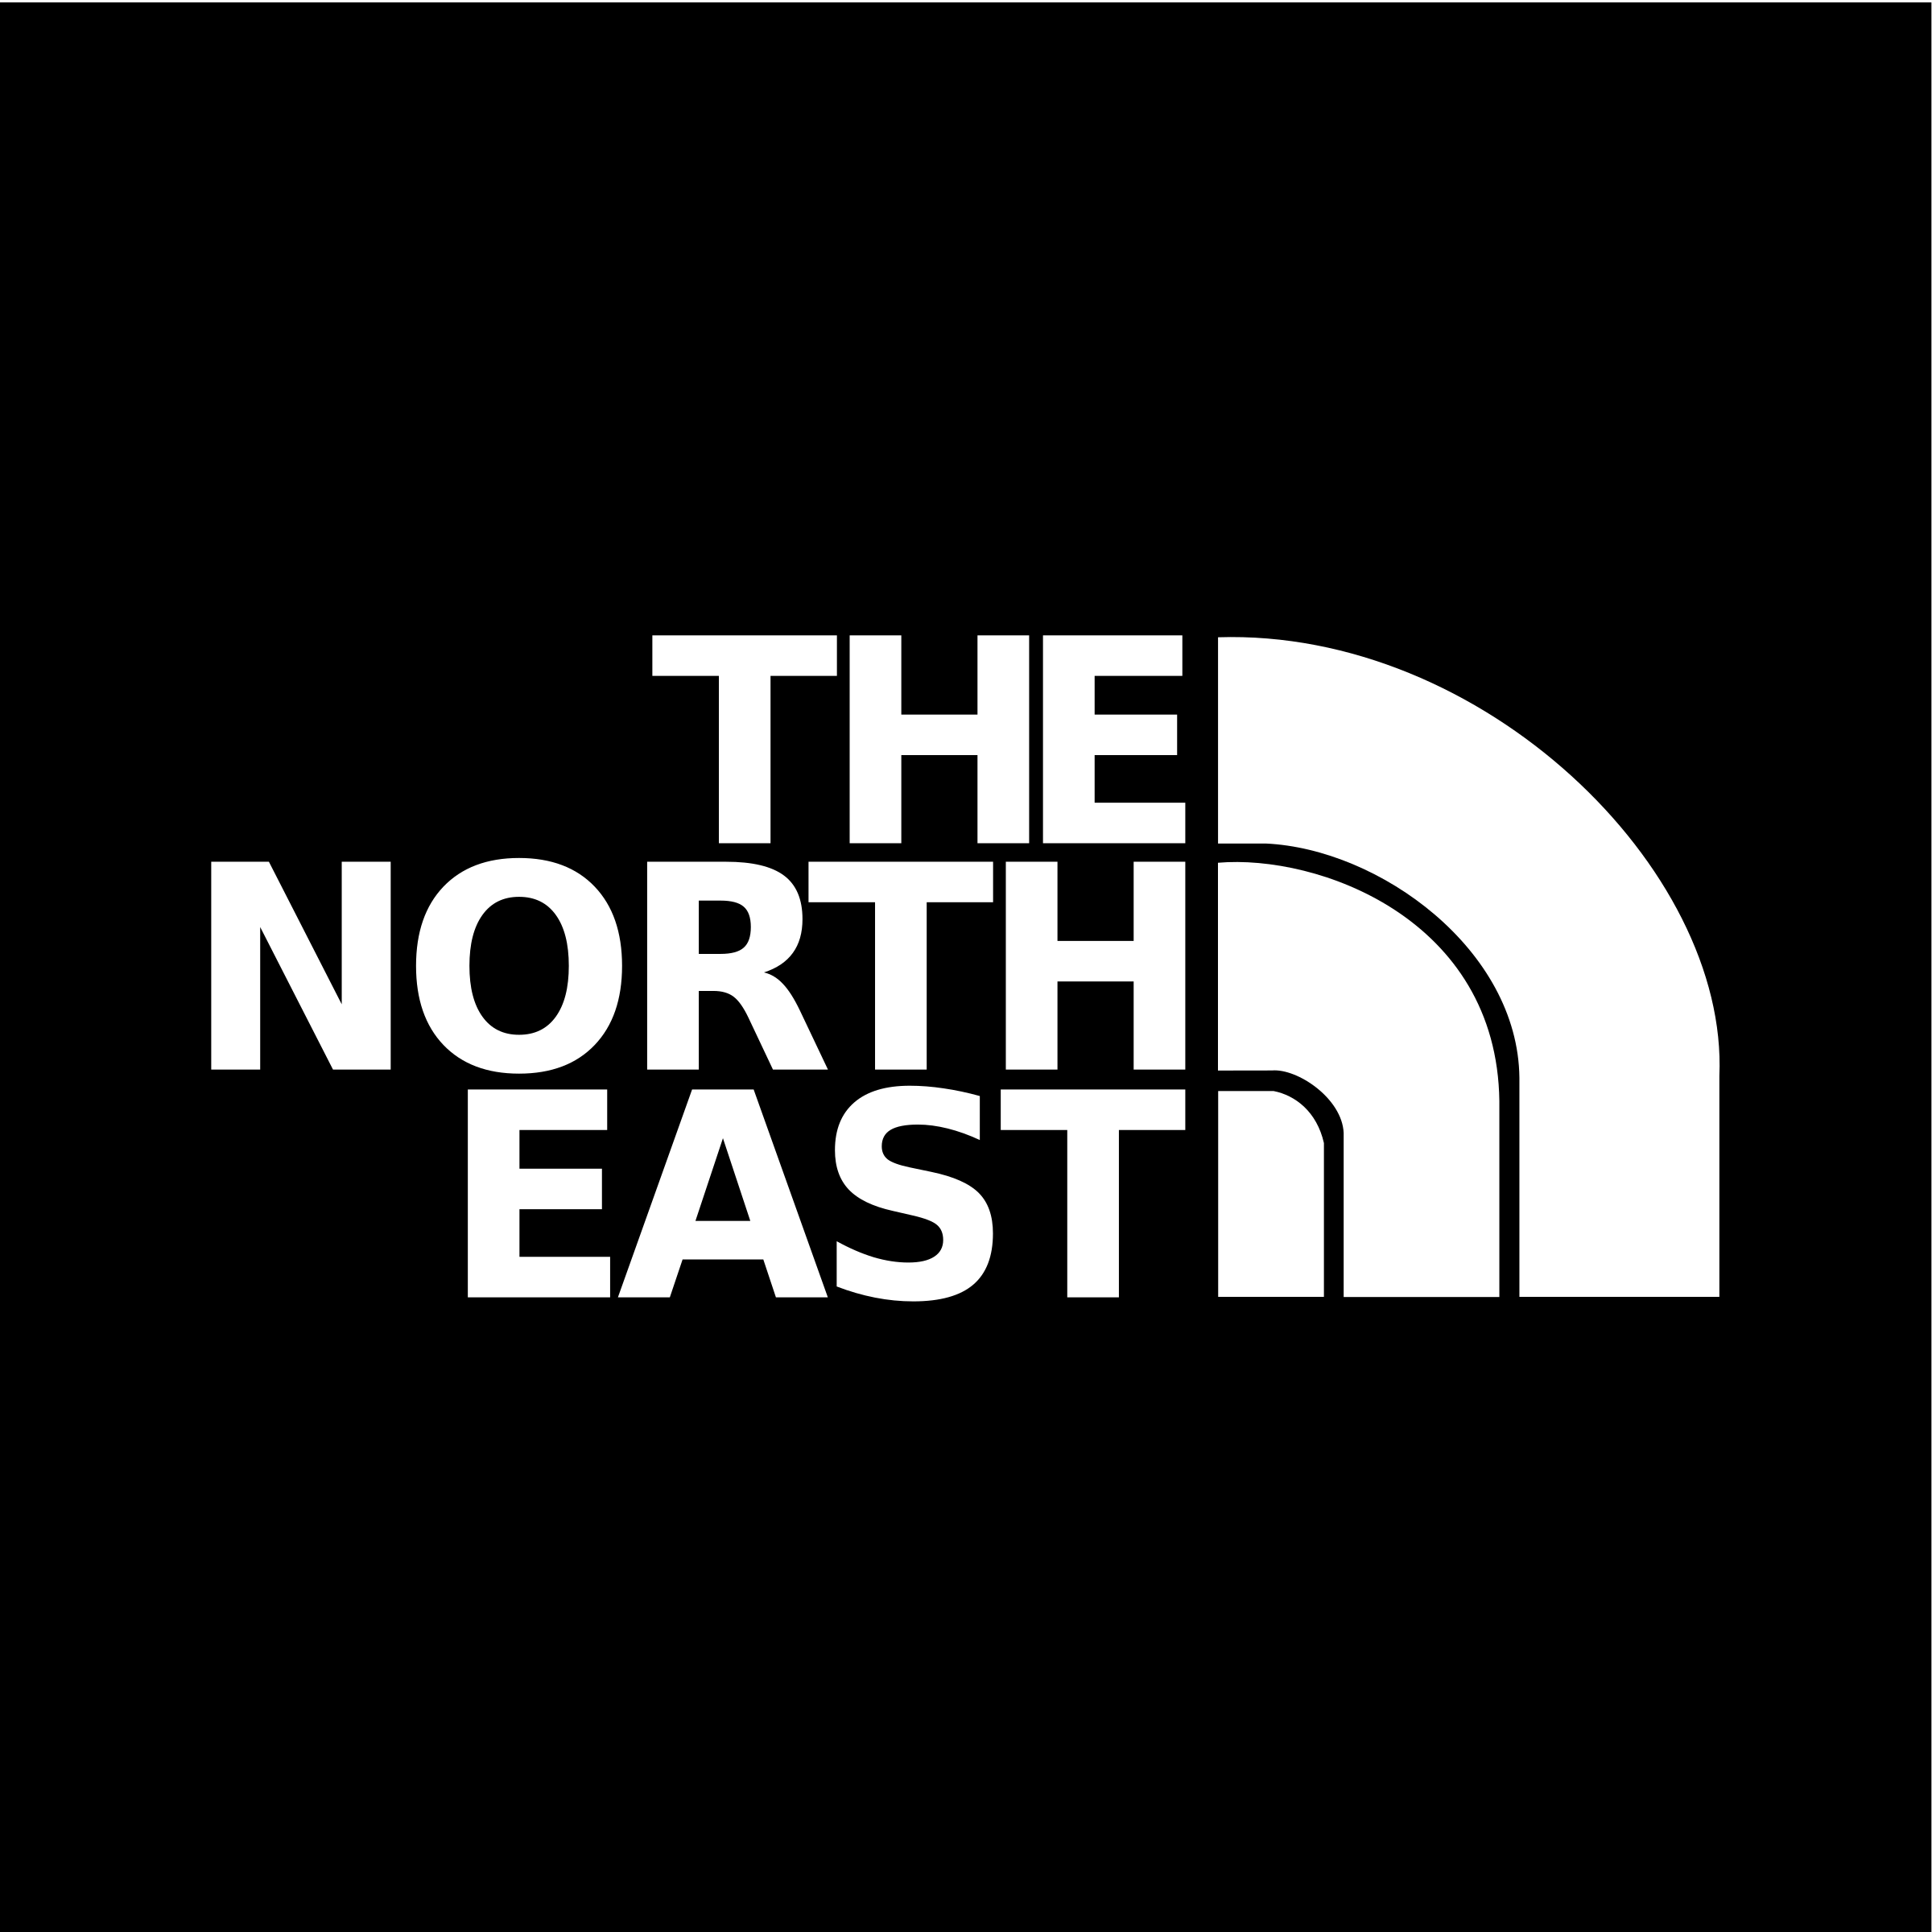 The North East by JArt